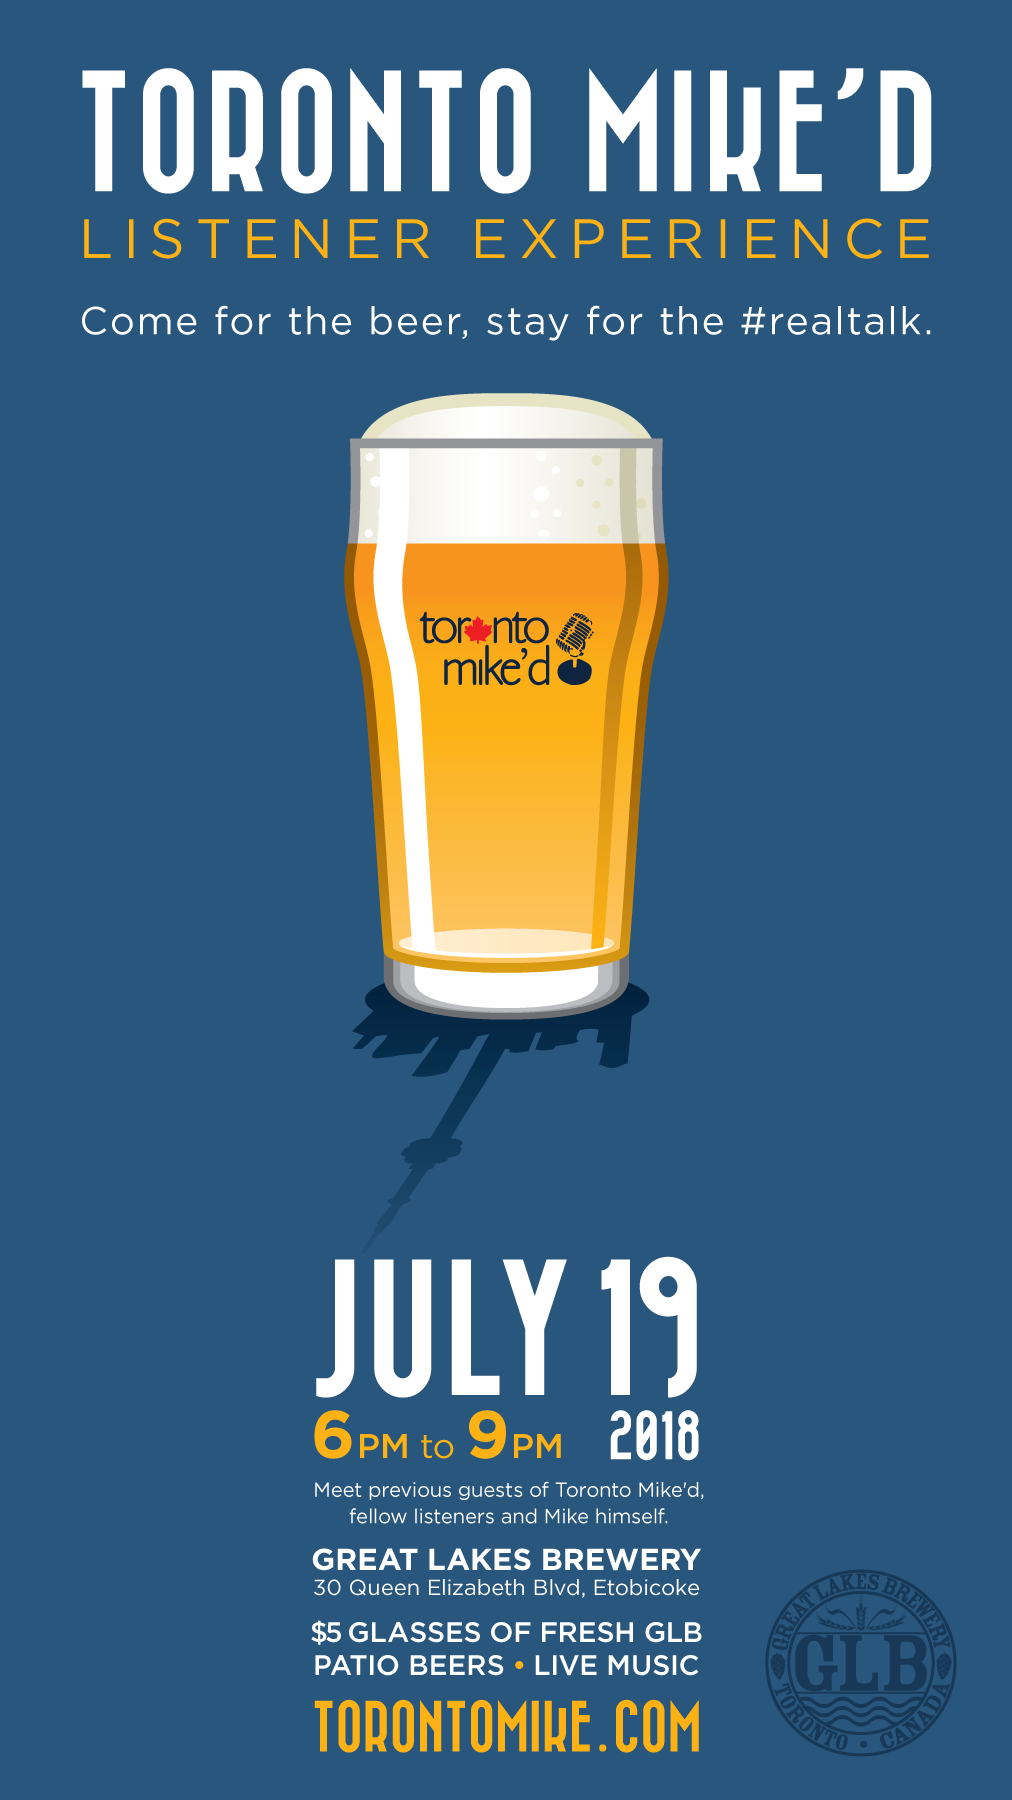 Toronto Mike'd Listener Experience at Great Lakes Brewery on July 19